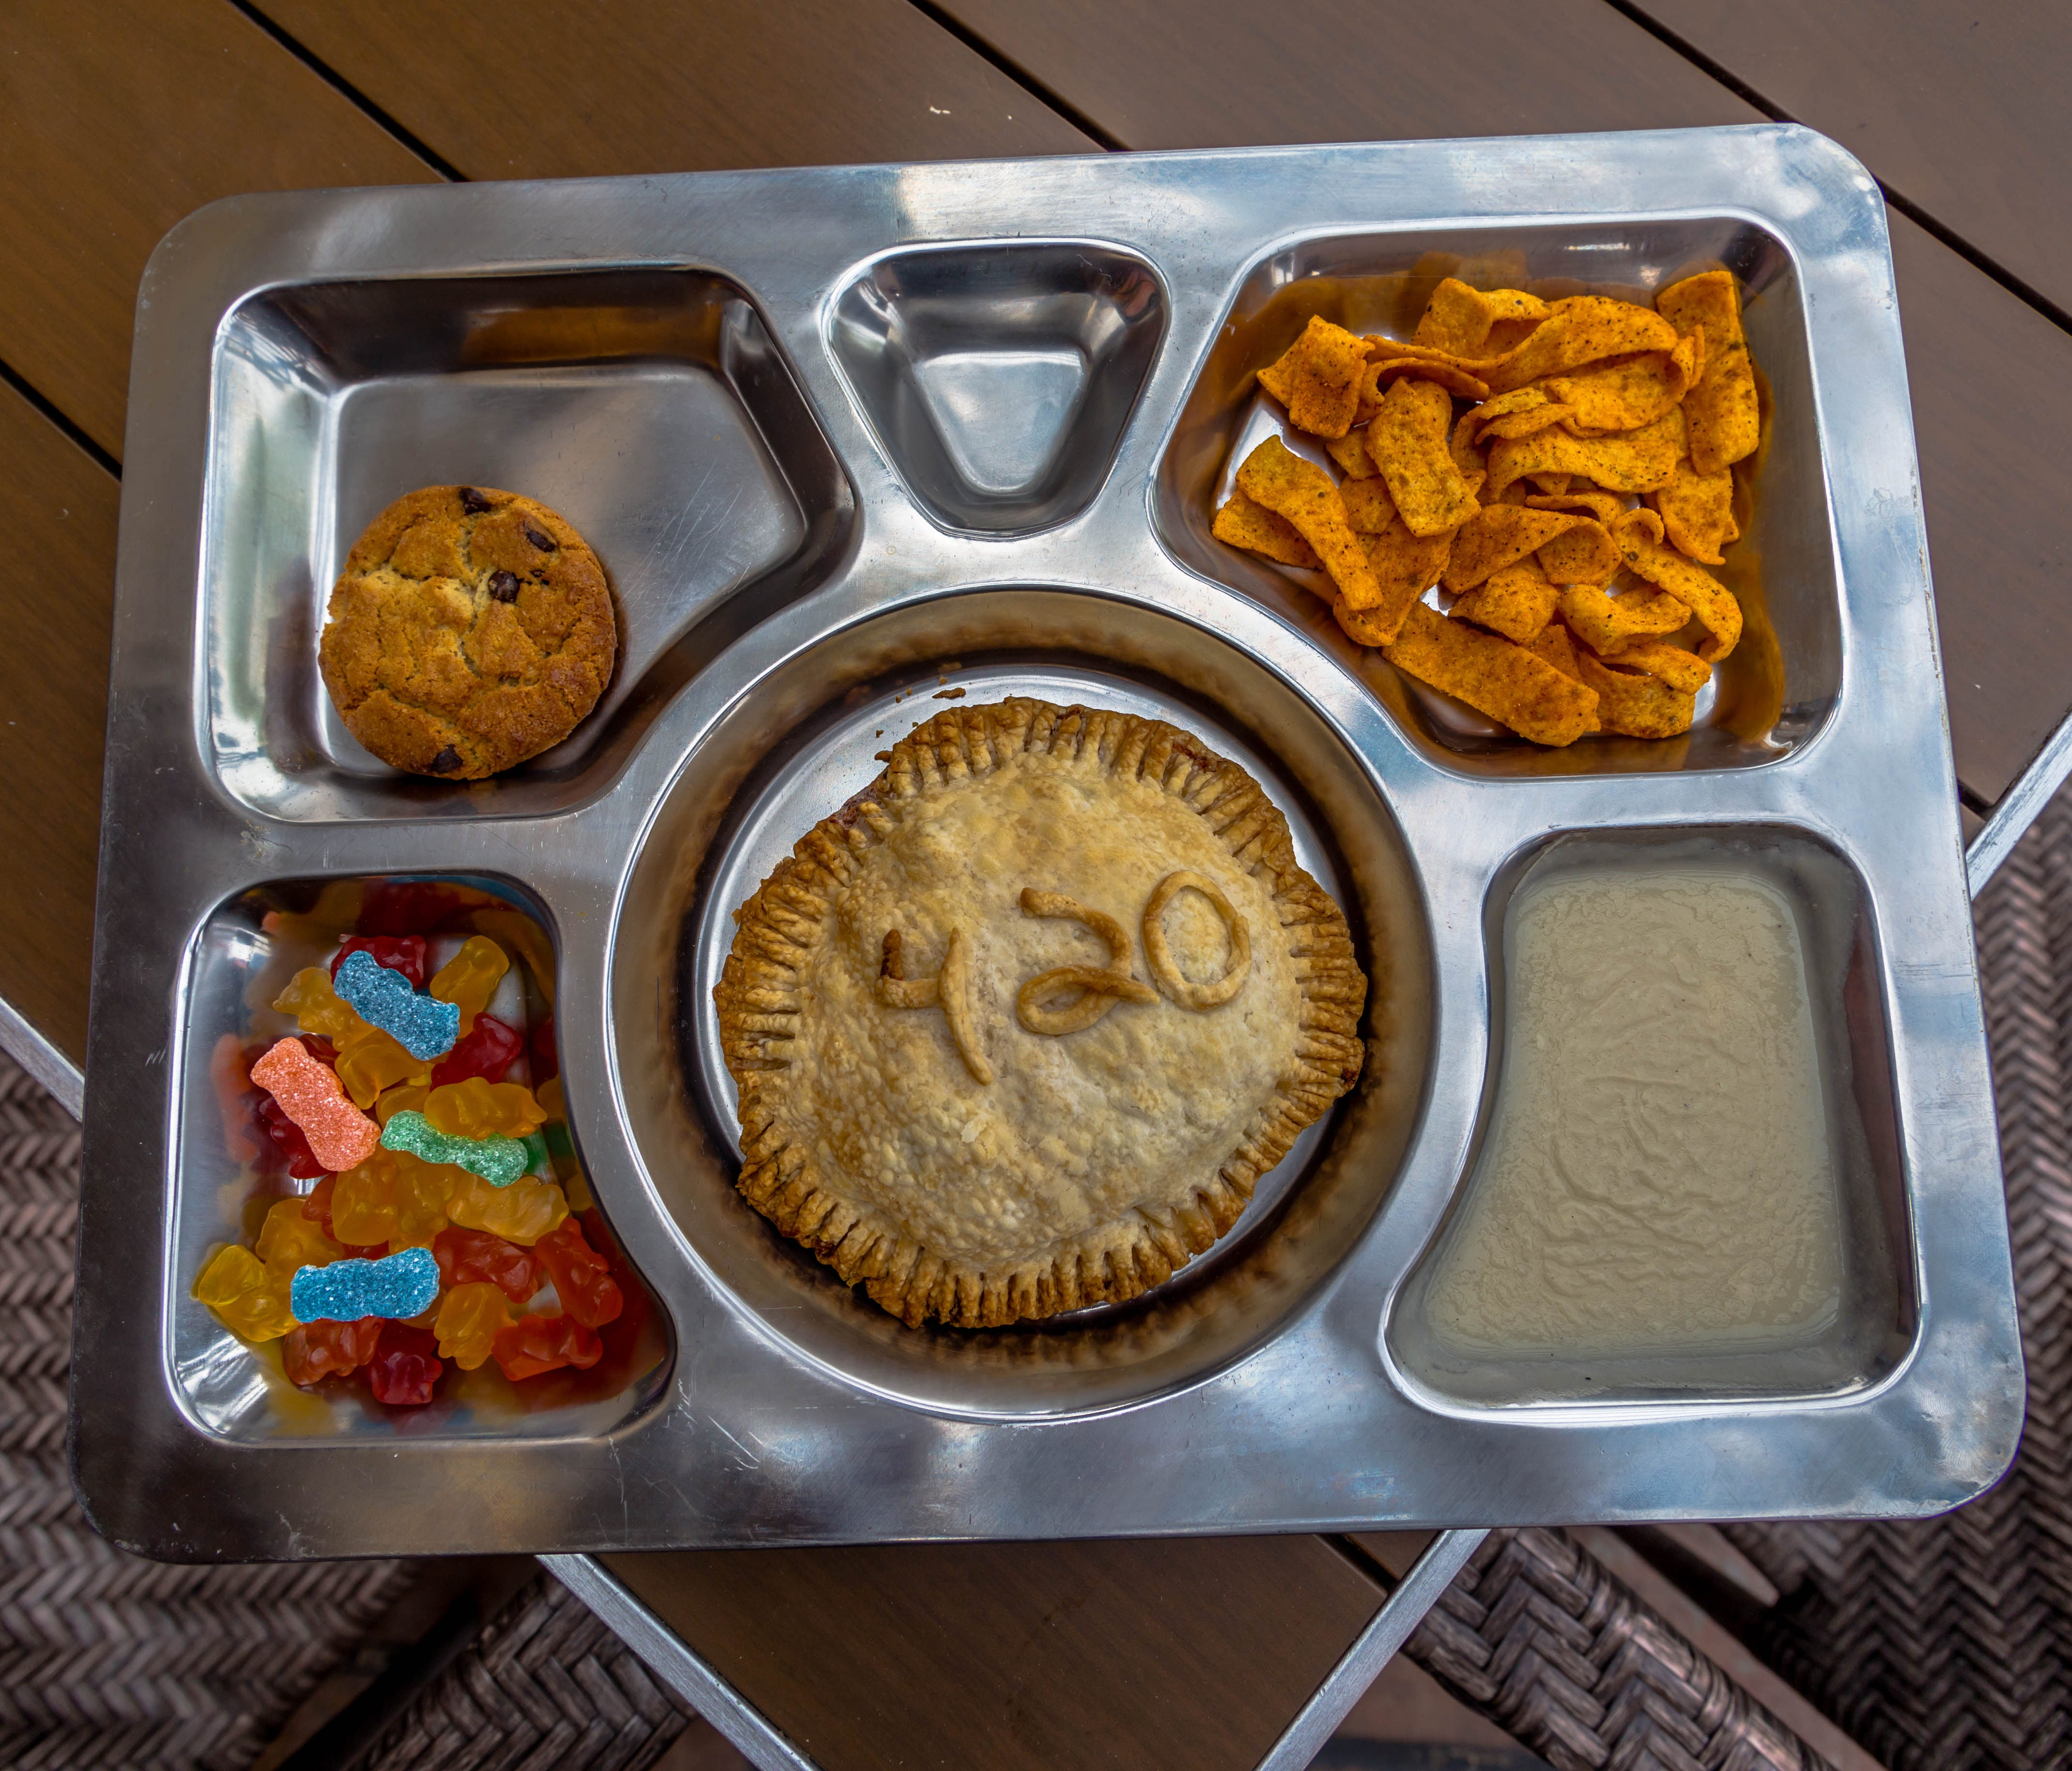 Ginger Monkey, an Arizona restaurant, has a special 420 Pot Pie, which comes with munchies on the side.